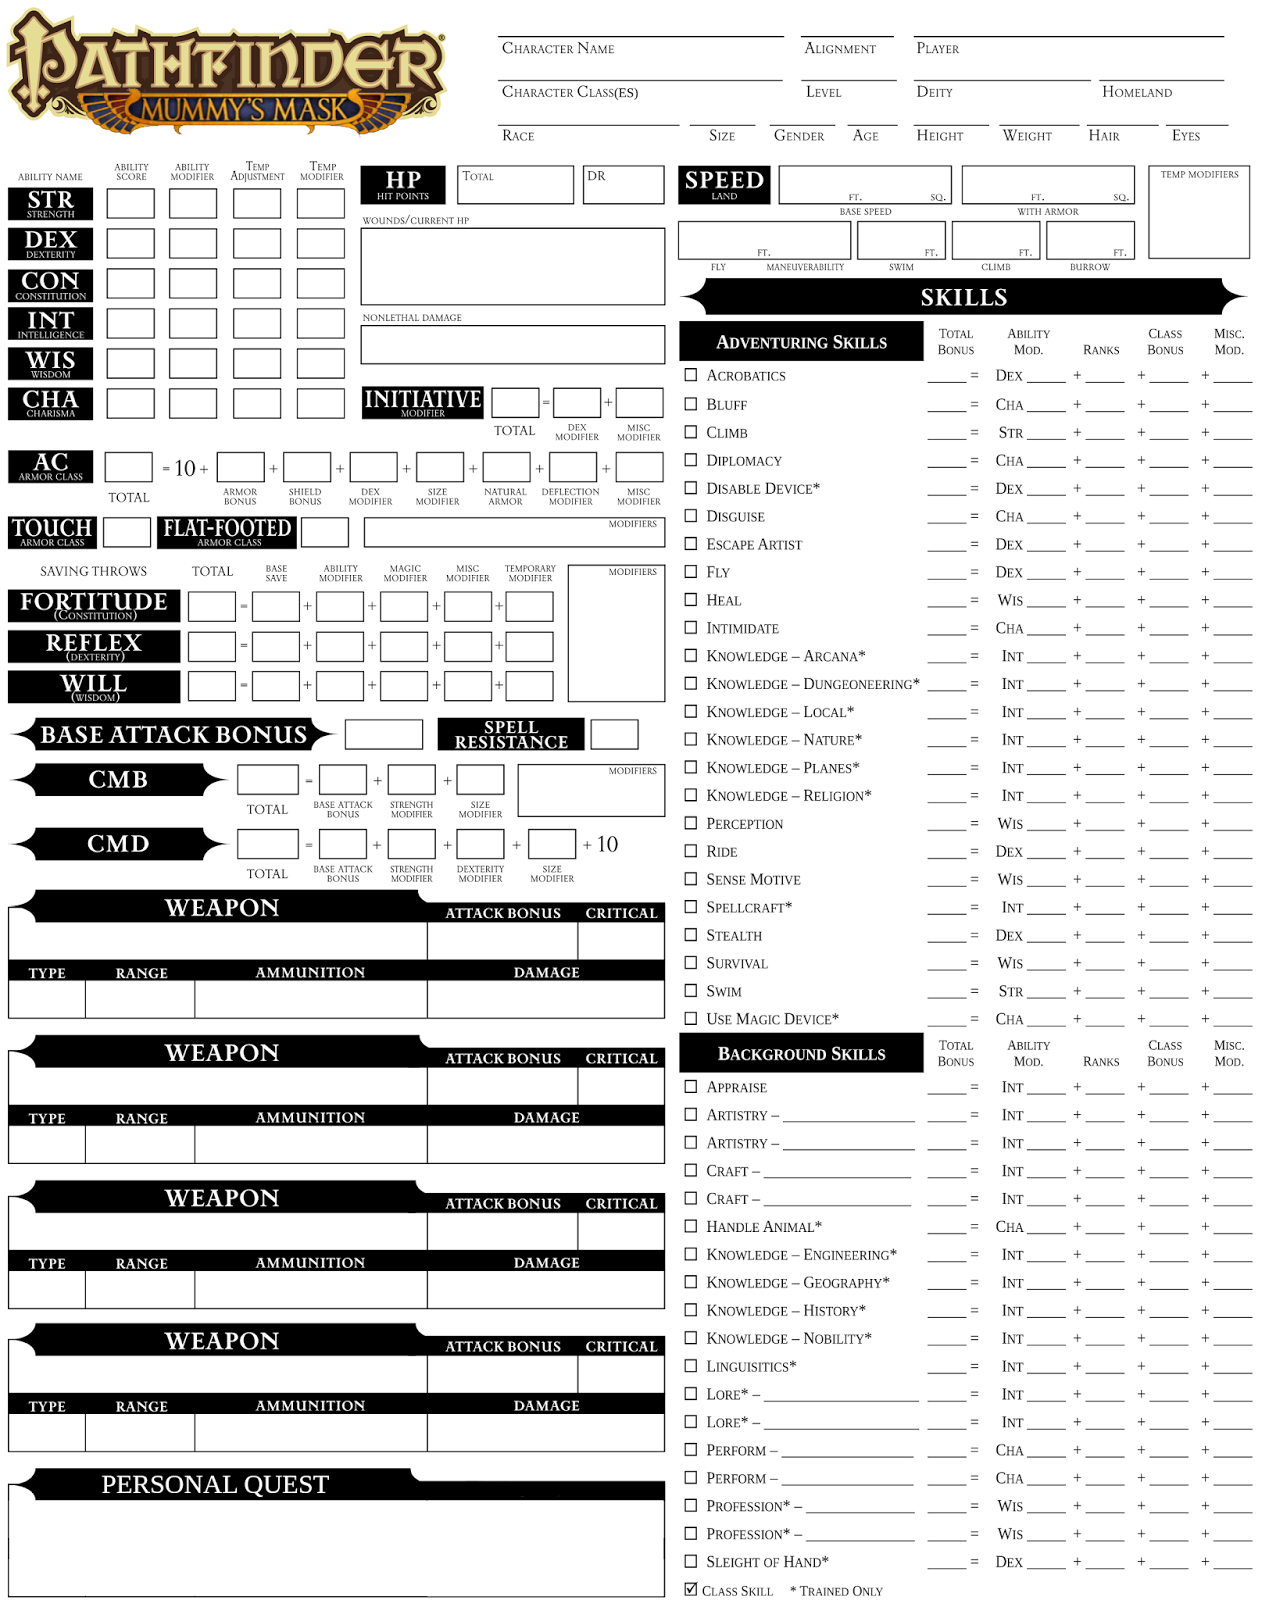 It is an image of Refreshing Printable Pathfinder Character Sheet